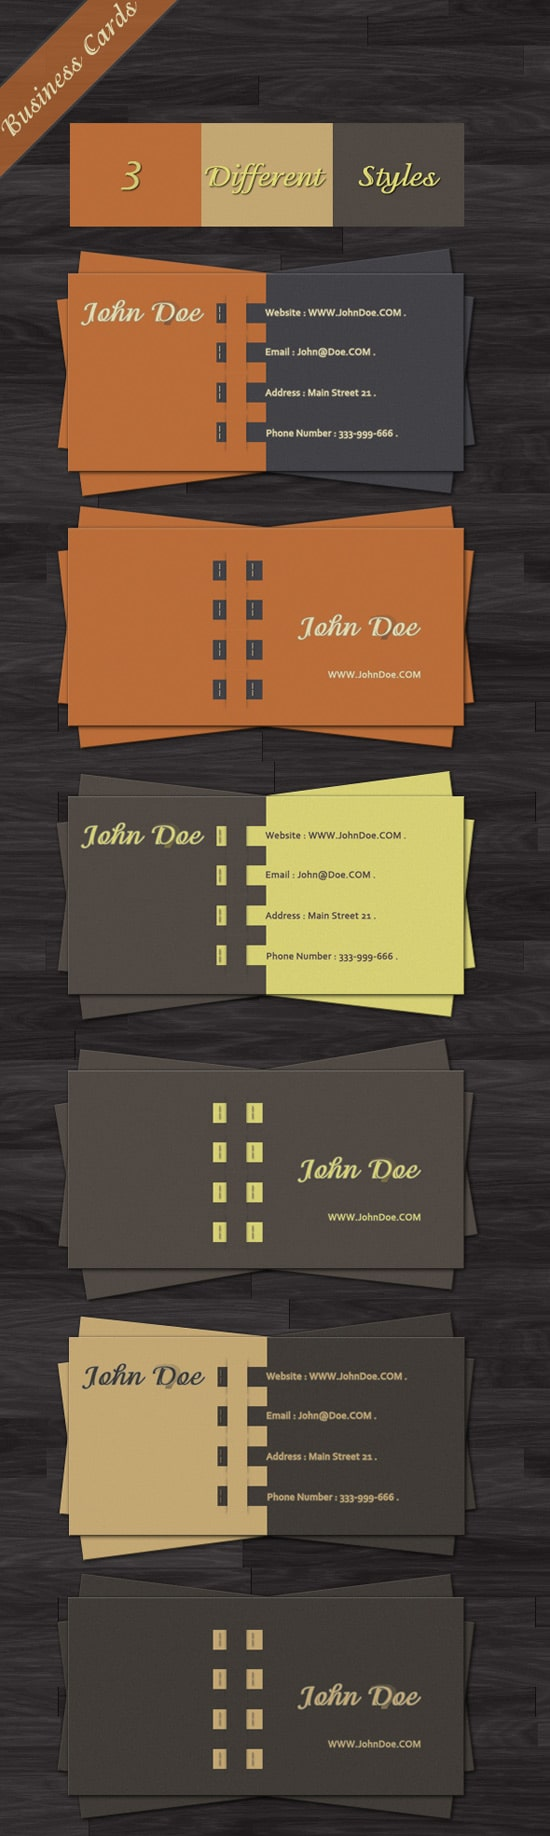 Free Business Card Templates Designrfixcom - Email business card templates